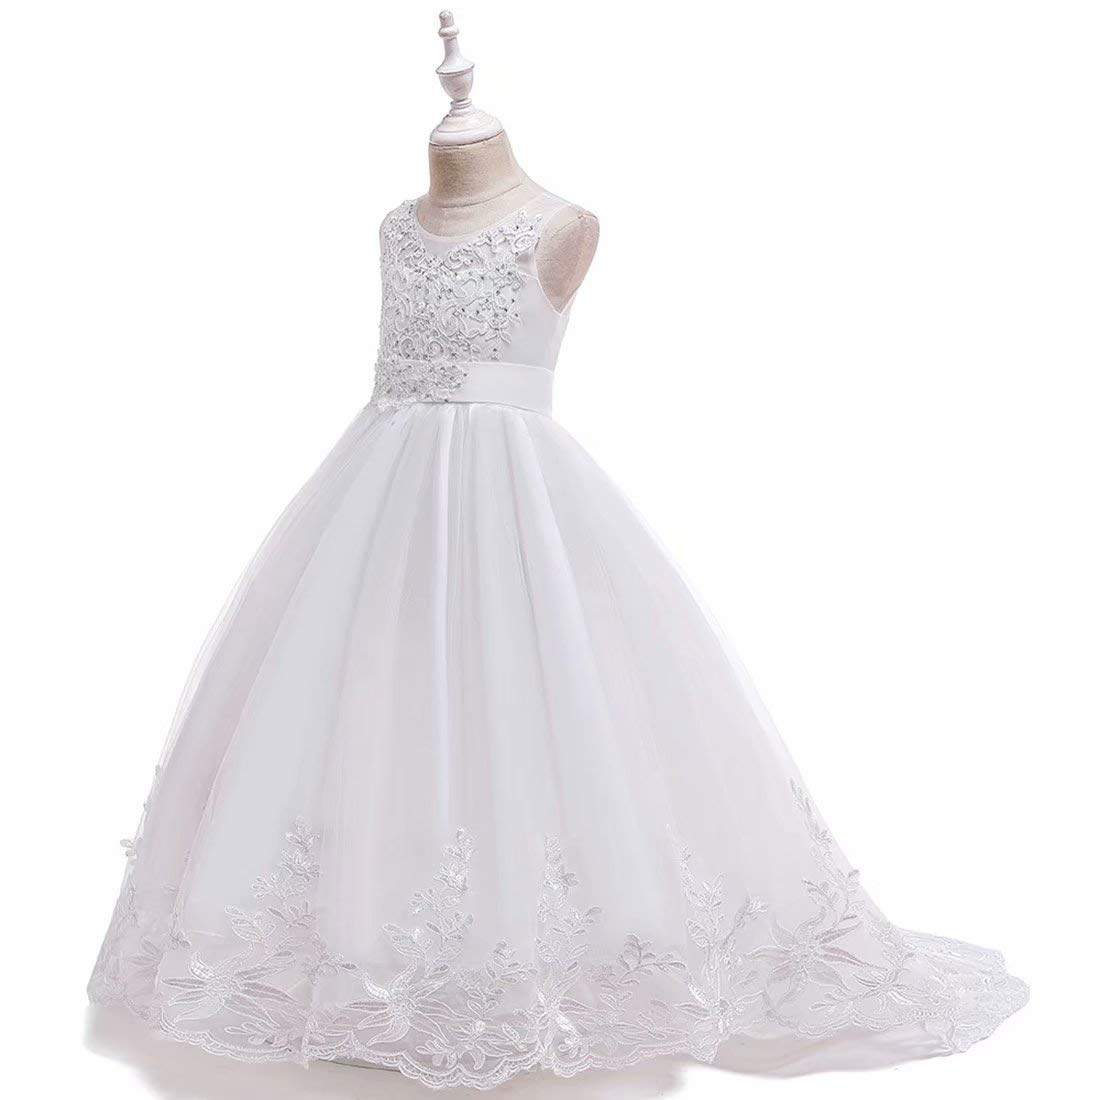 Princess Dress for Girls Pageant Formal Wedding Bridesmaid Special Occasion Gown